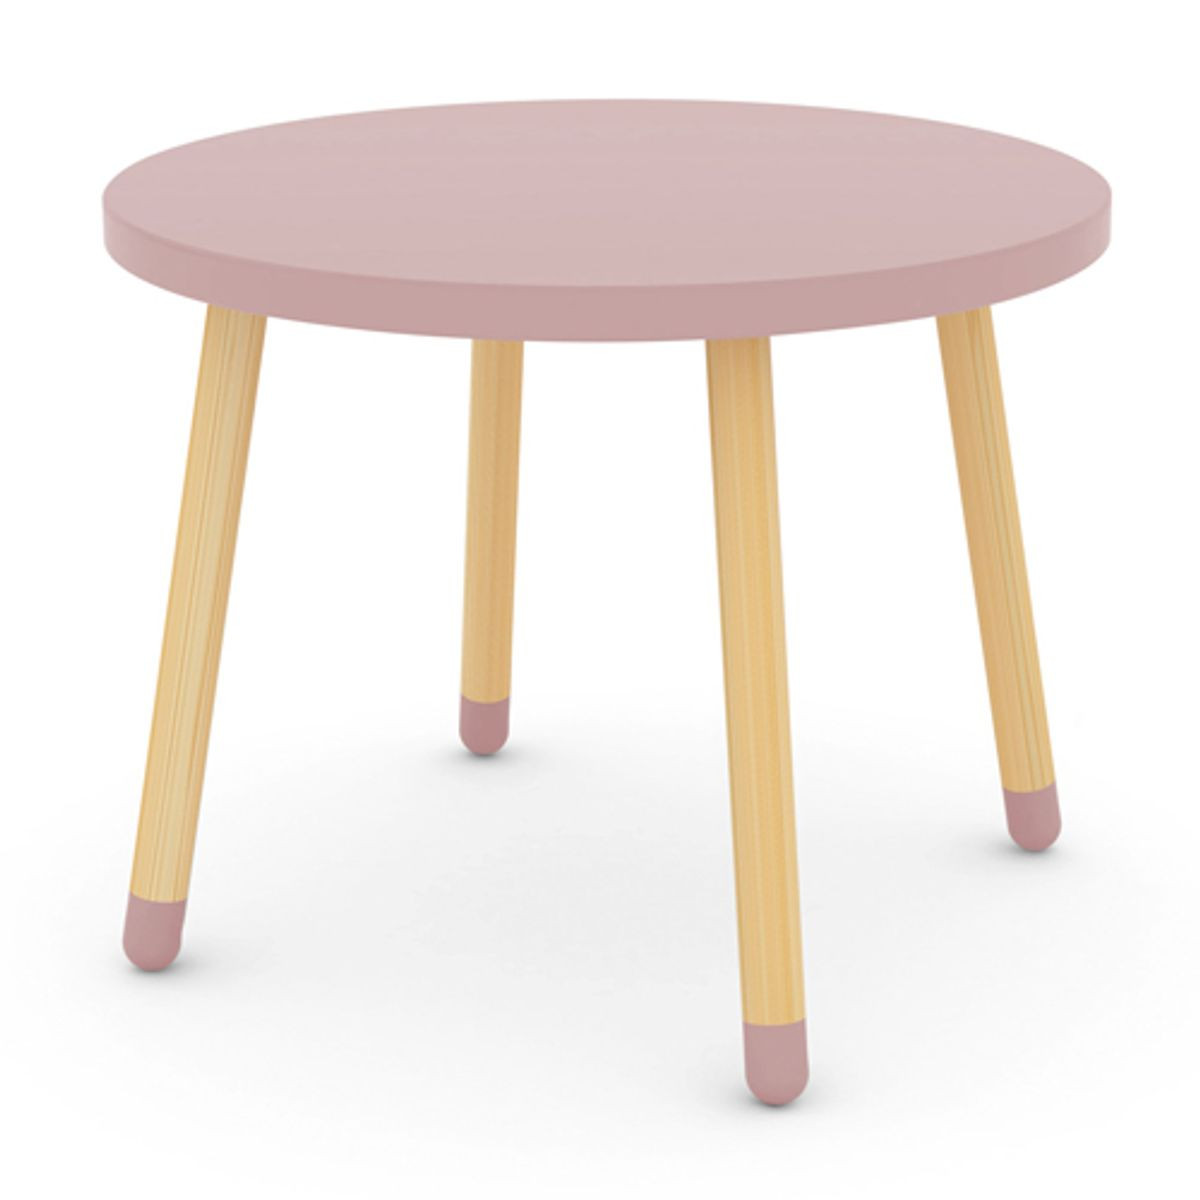 table ronde en bois pour enfant flexa play vieux rose. Black Bedroom Furniture Sets. Home Design Ideas